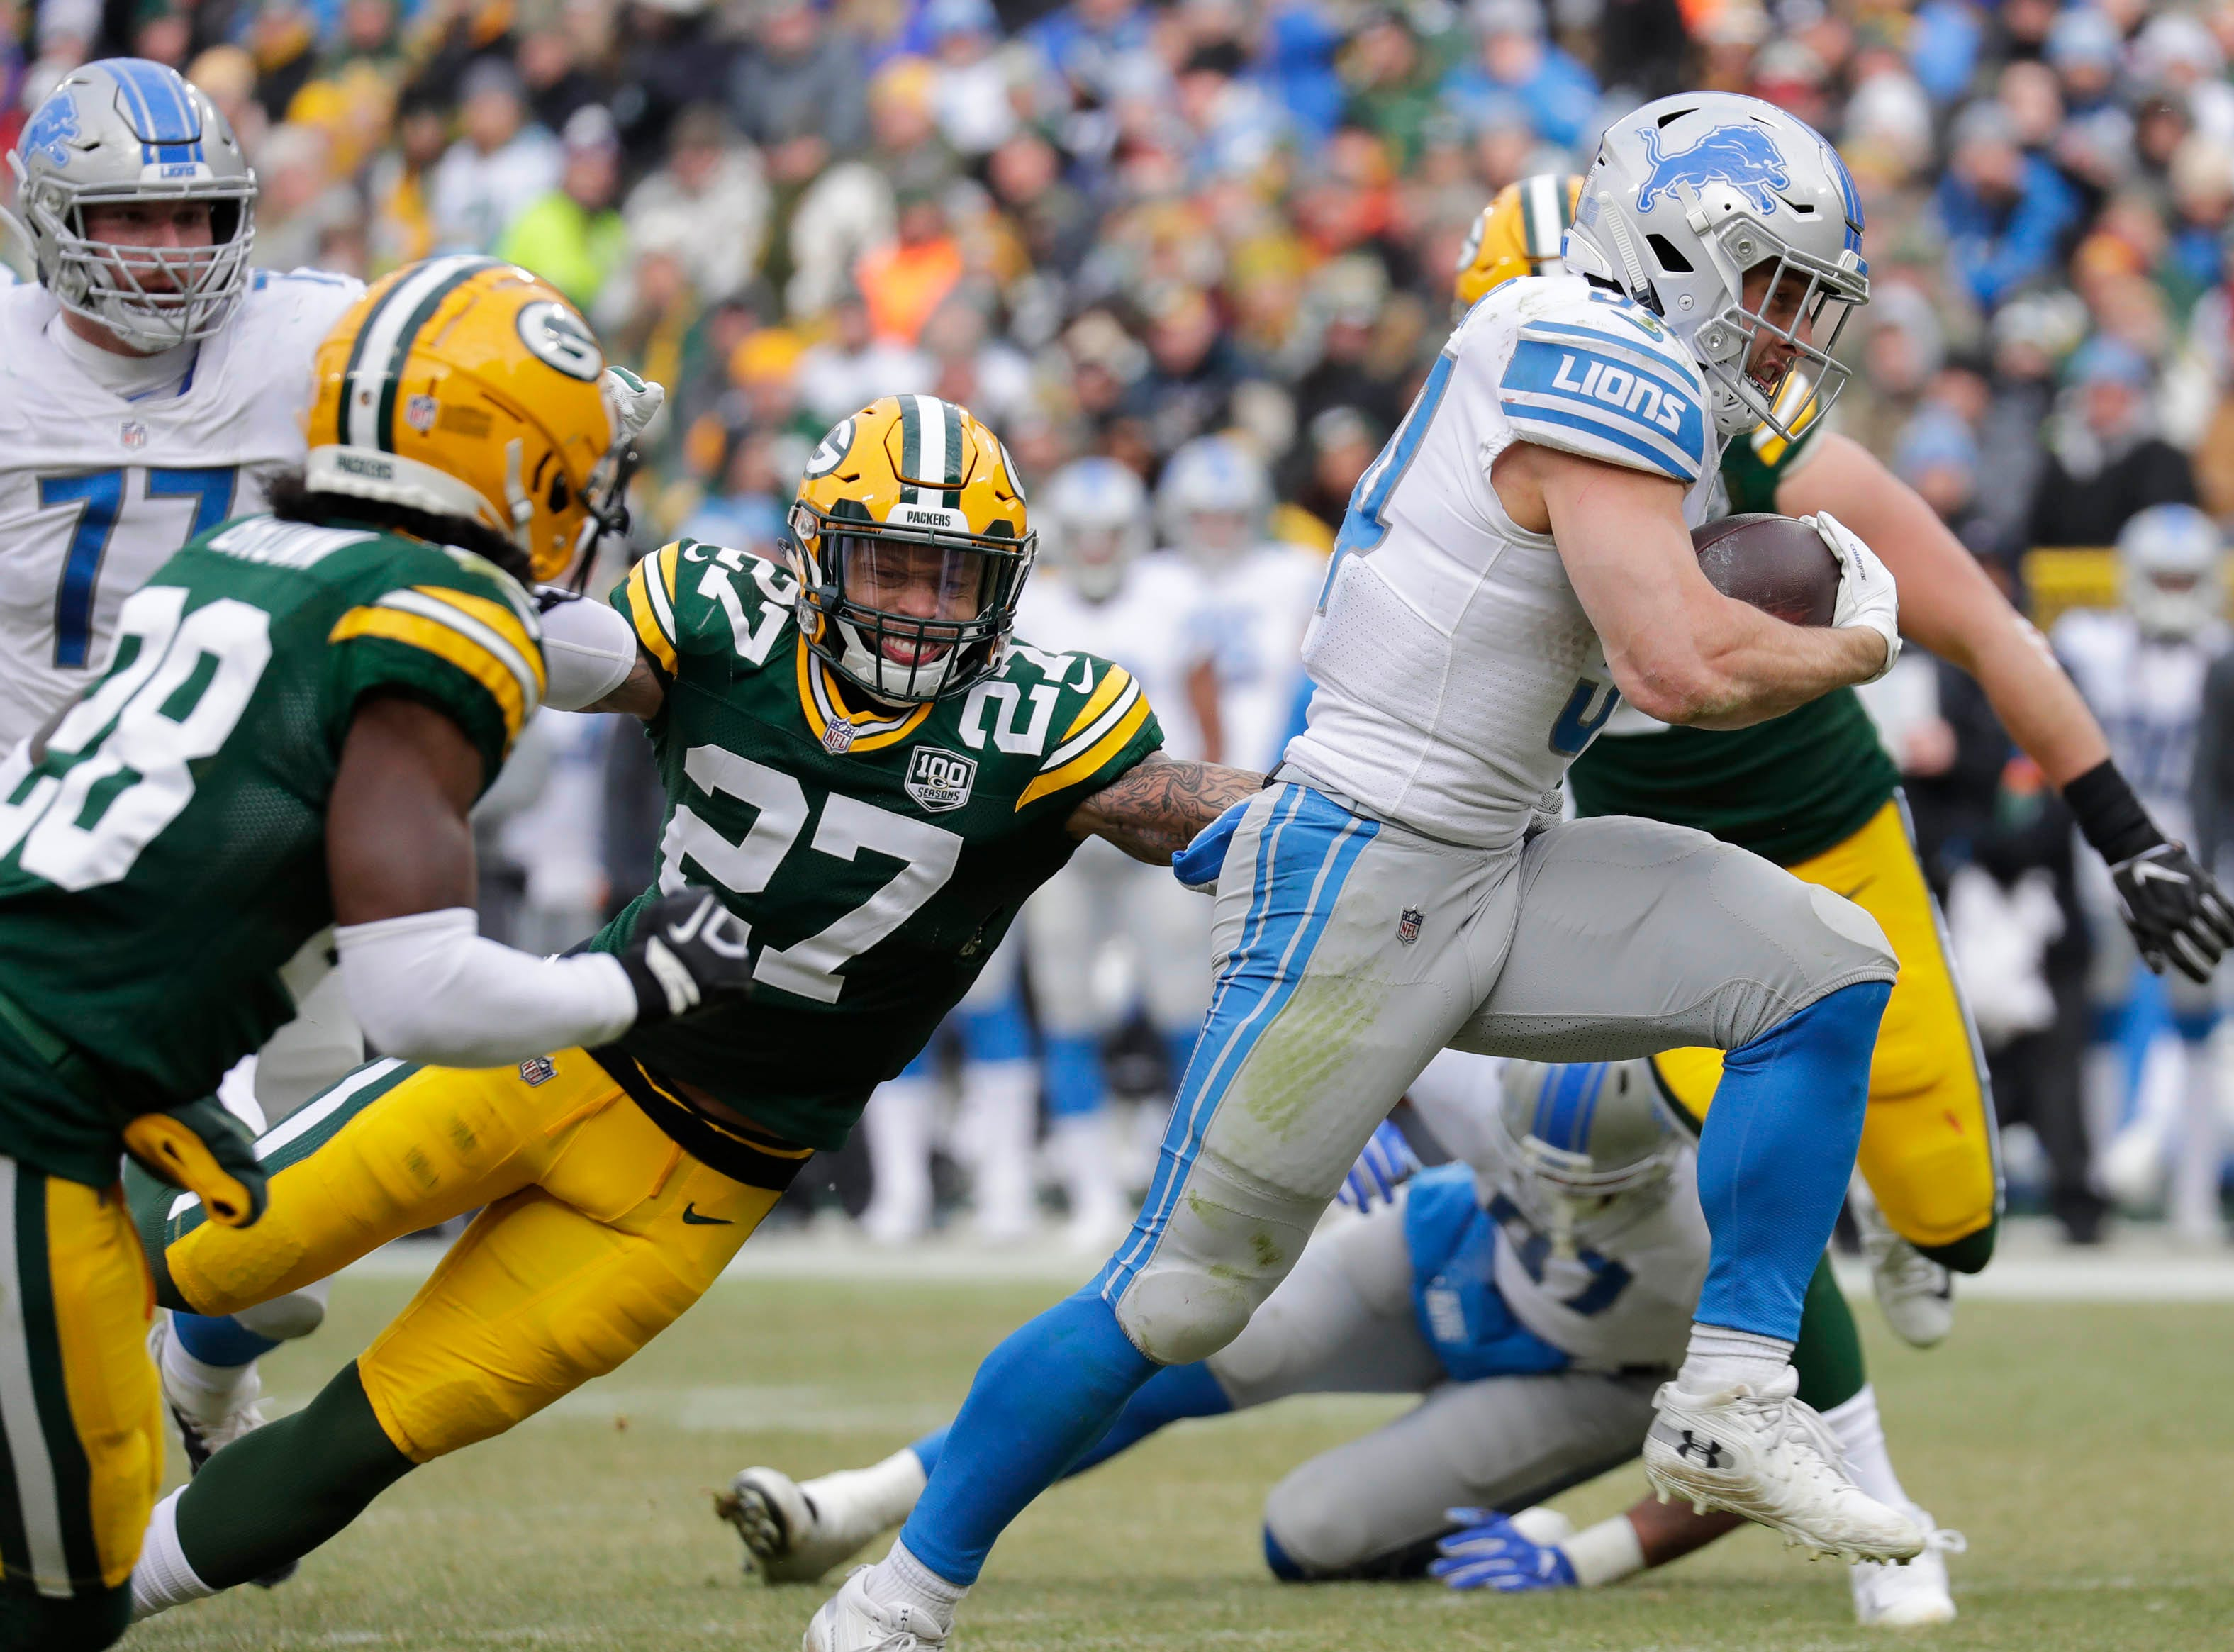 Detroit Lions running back Zach Zenner (34) breaks away for a touchdown run against defensive back Tony Brown (28) and defensive back Josh Jones (27) late in the second quarter Sunday, December 30, 2018, at Lambeau Field in Green Bay, Wis. 